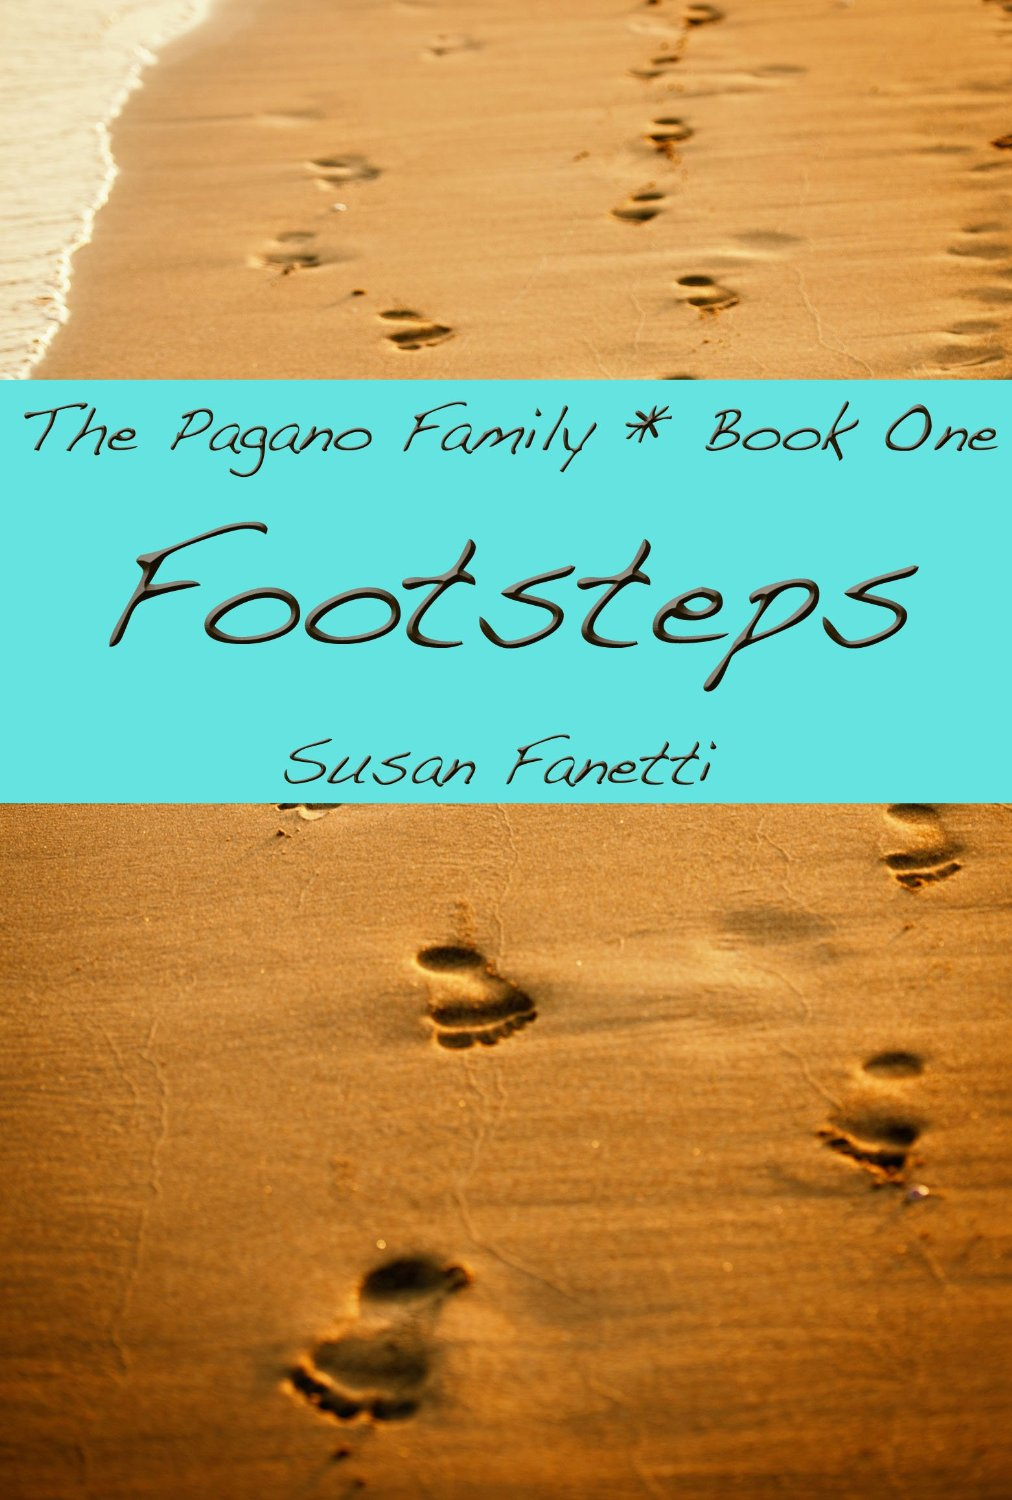 Foosteps Book Cover